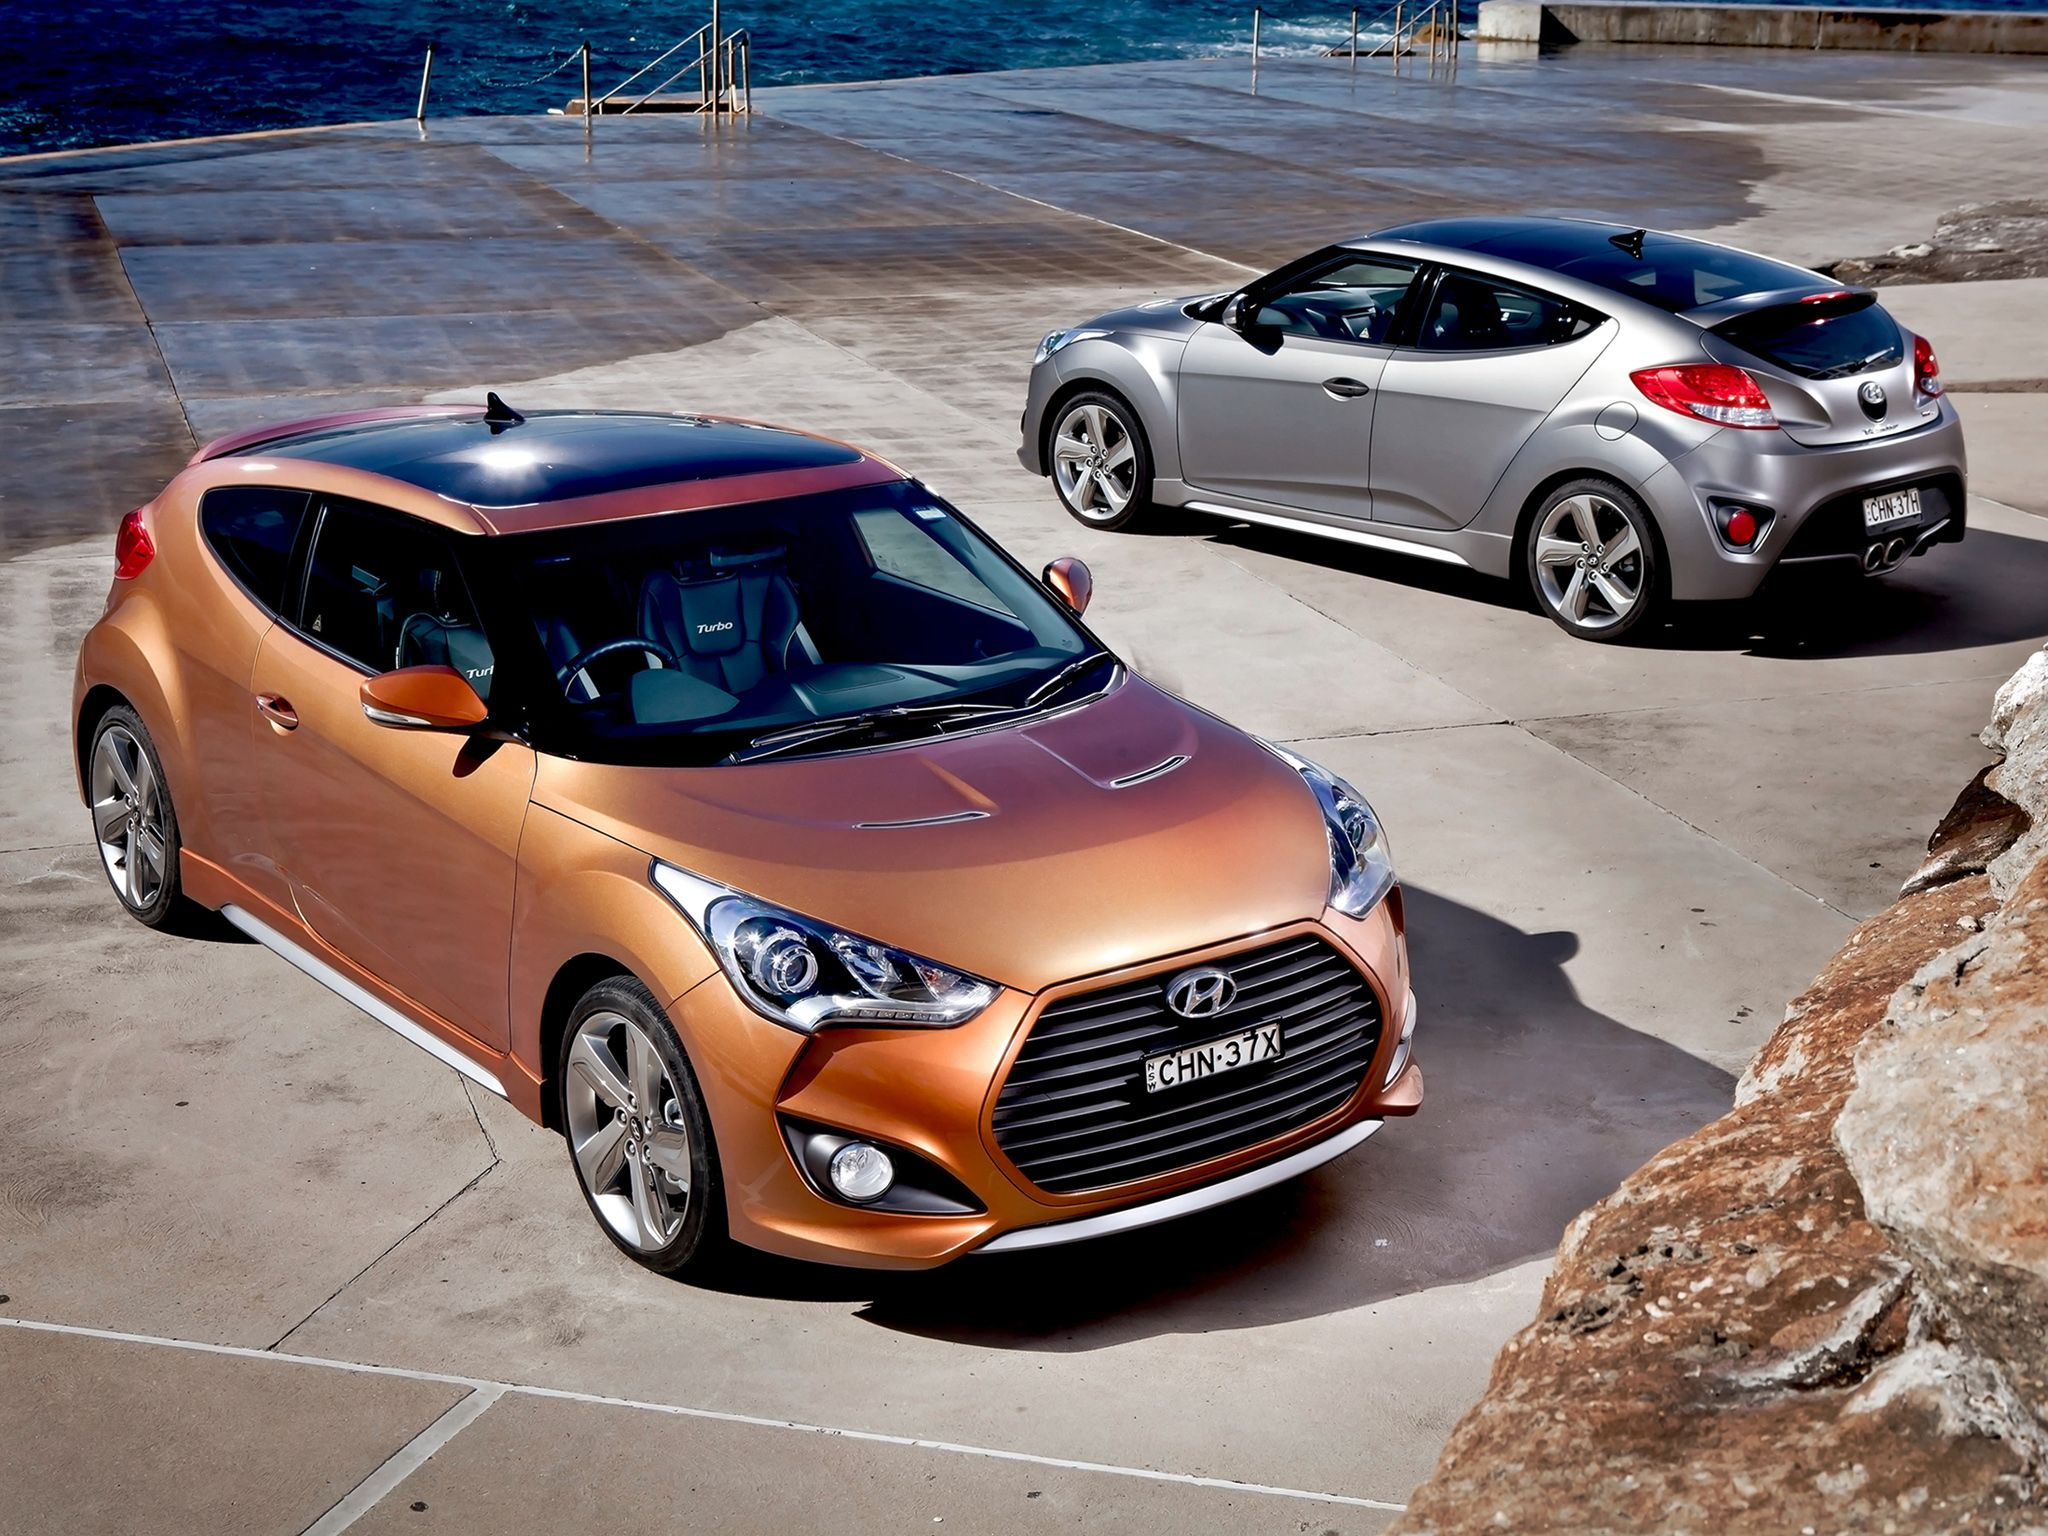 Hyundai veloster wallpaper high definition ca8 hyundai veloster hyundai veloster wallpaper high definition ca8 voltagebd Image collections